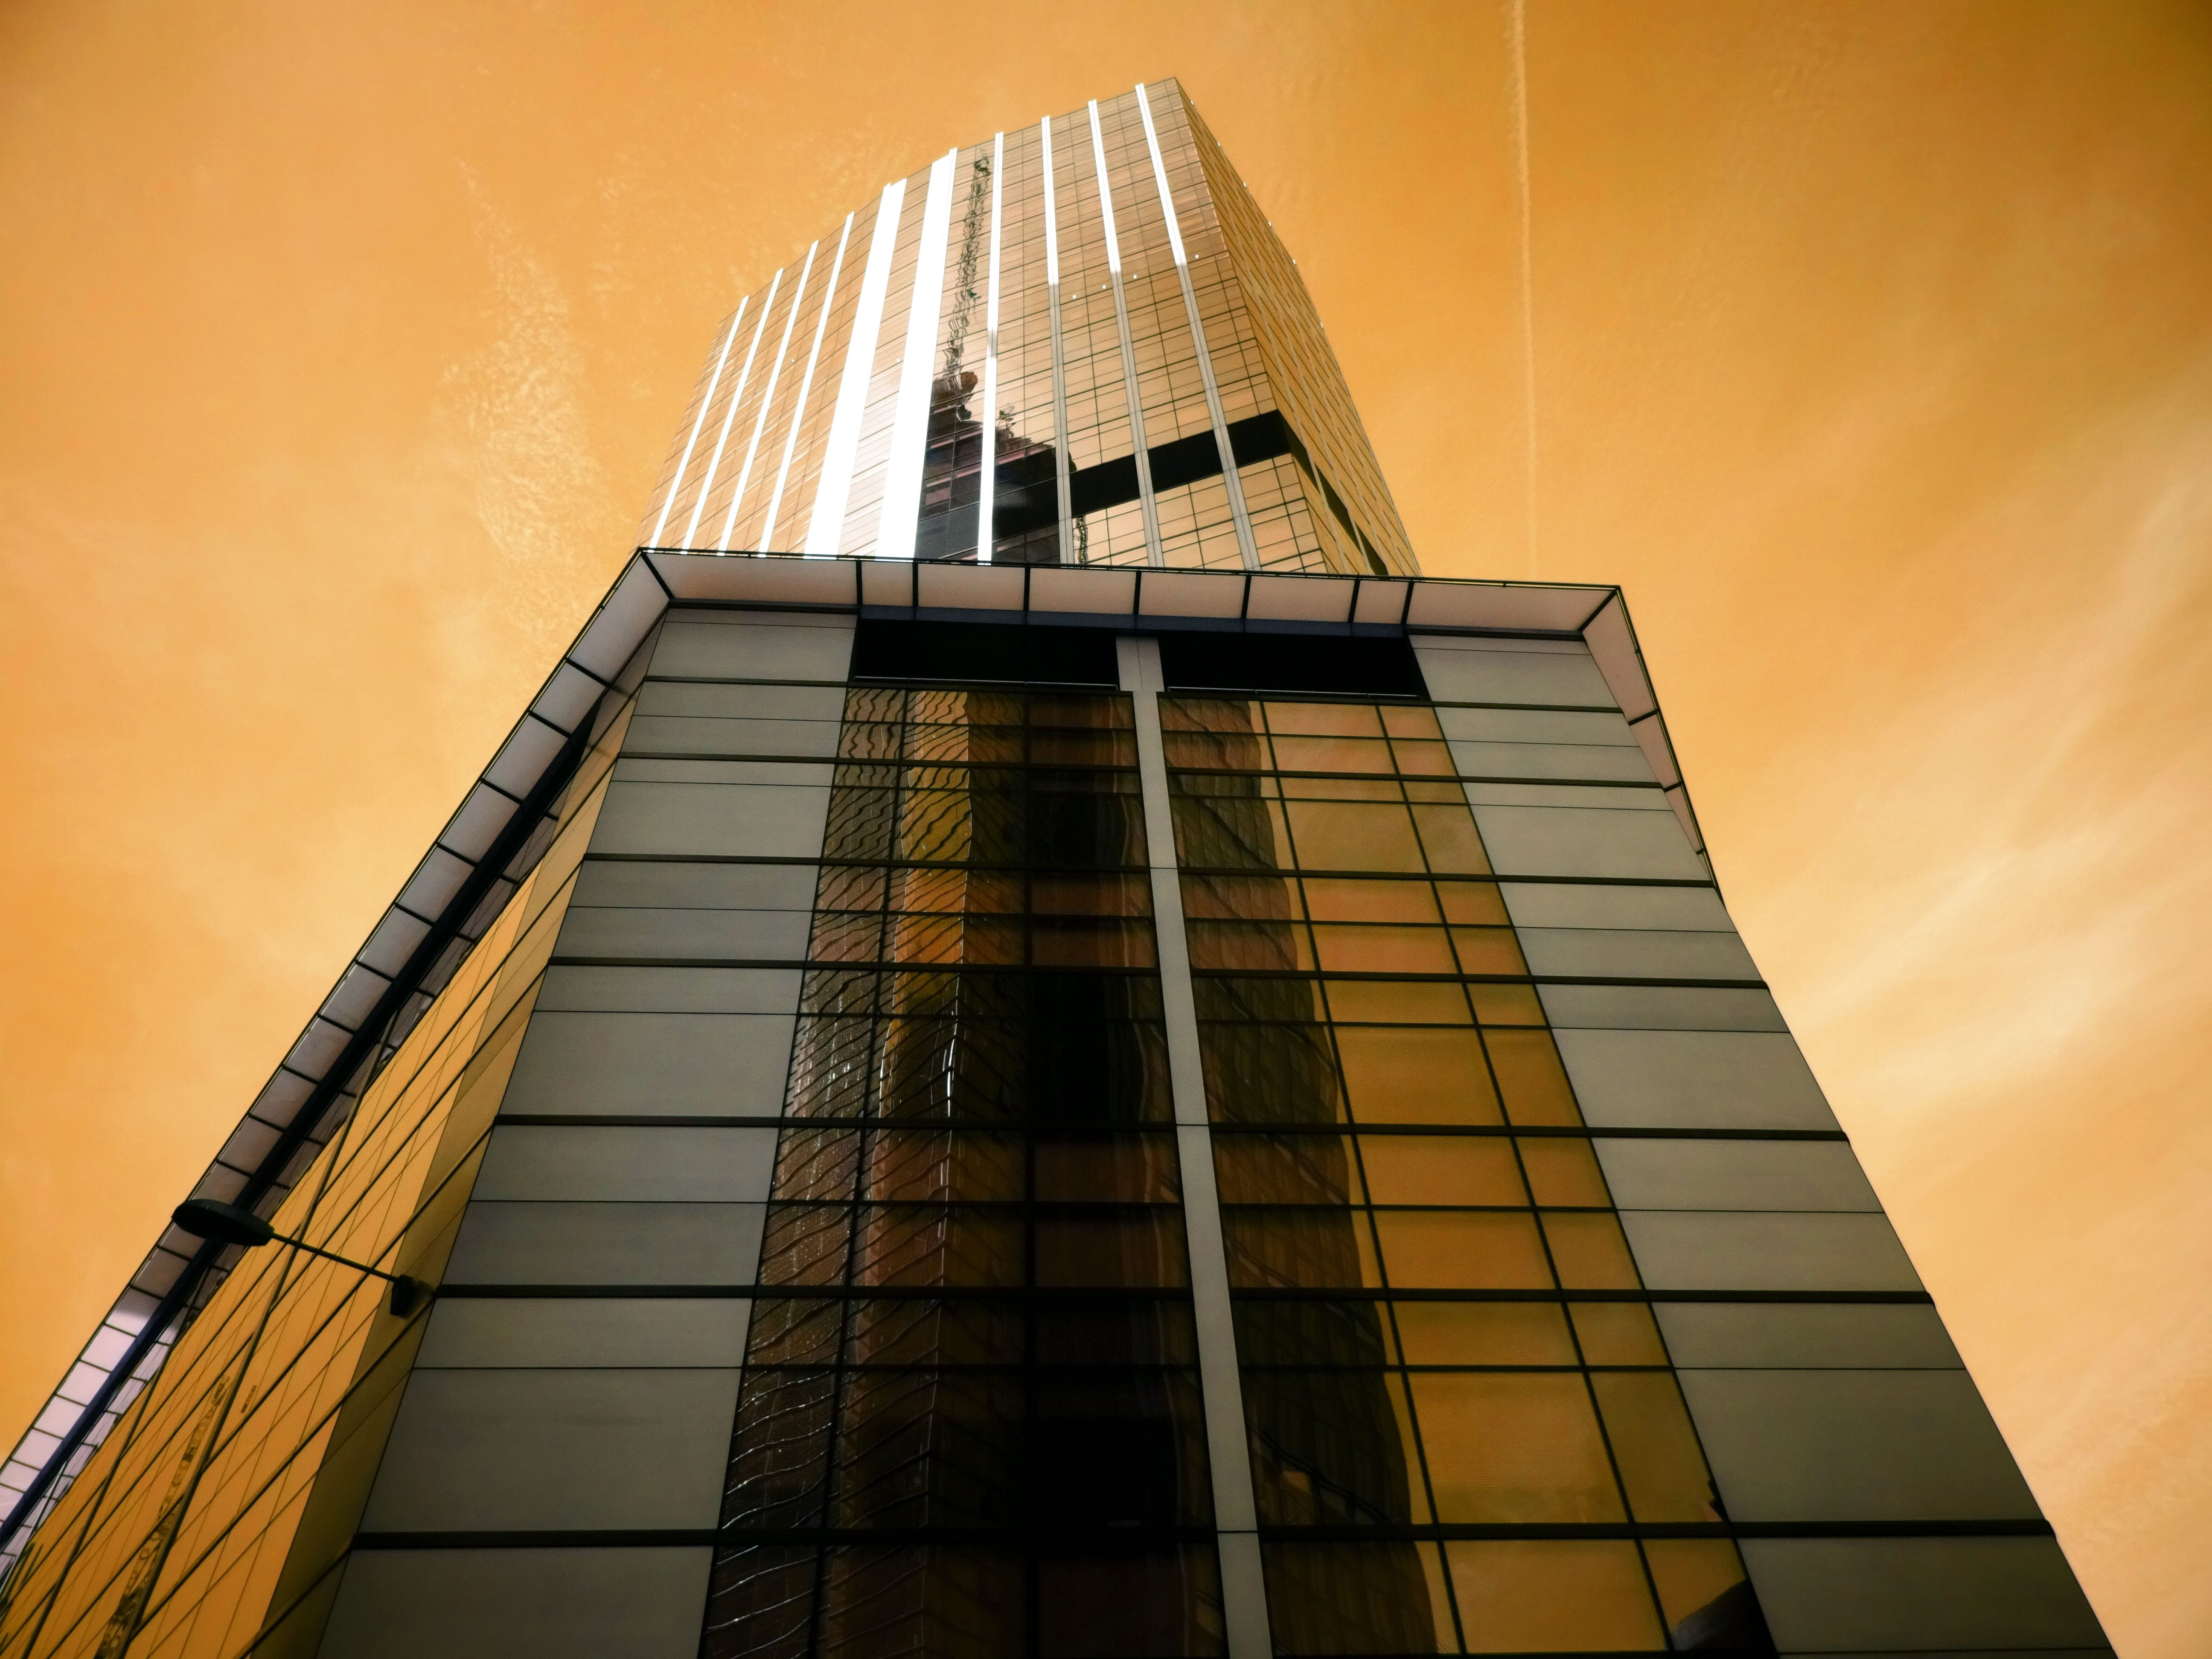 Low Angle Photography of Glass High-rise Building